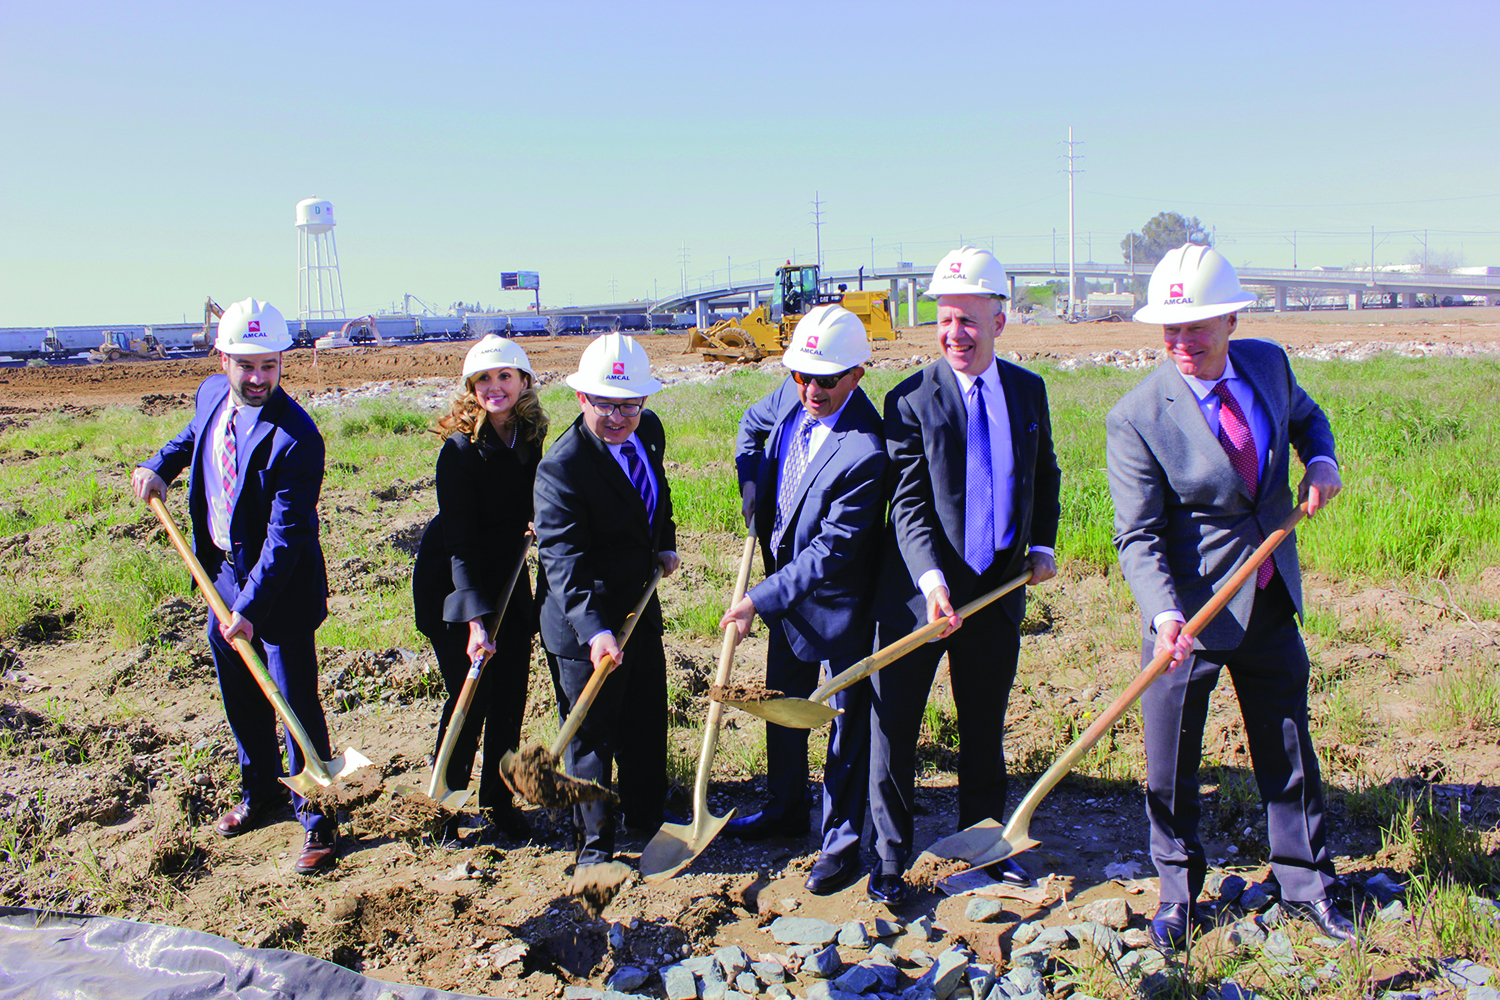 Mayor Darrel Steinberg, second from right, joins others in ceremonially breaking ground at The Crossings in May 2017. The Crossings are now open, joining other student living communities surrounding campus.